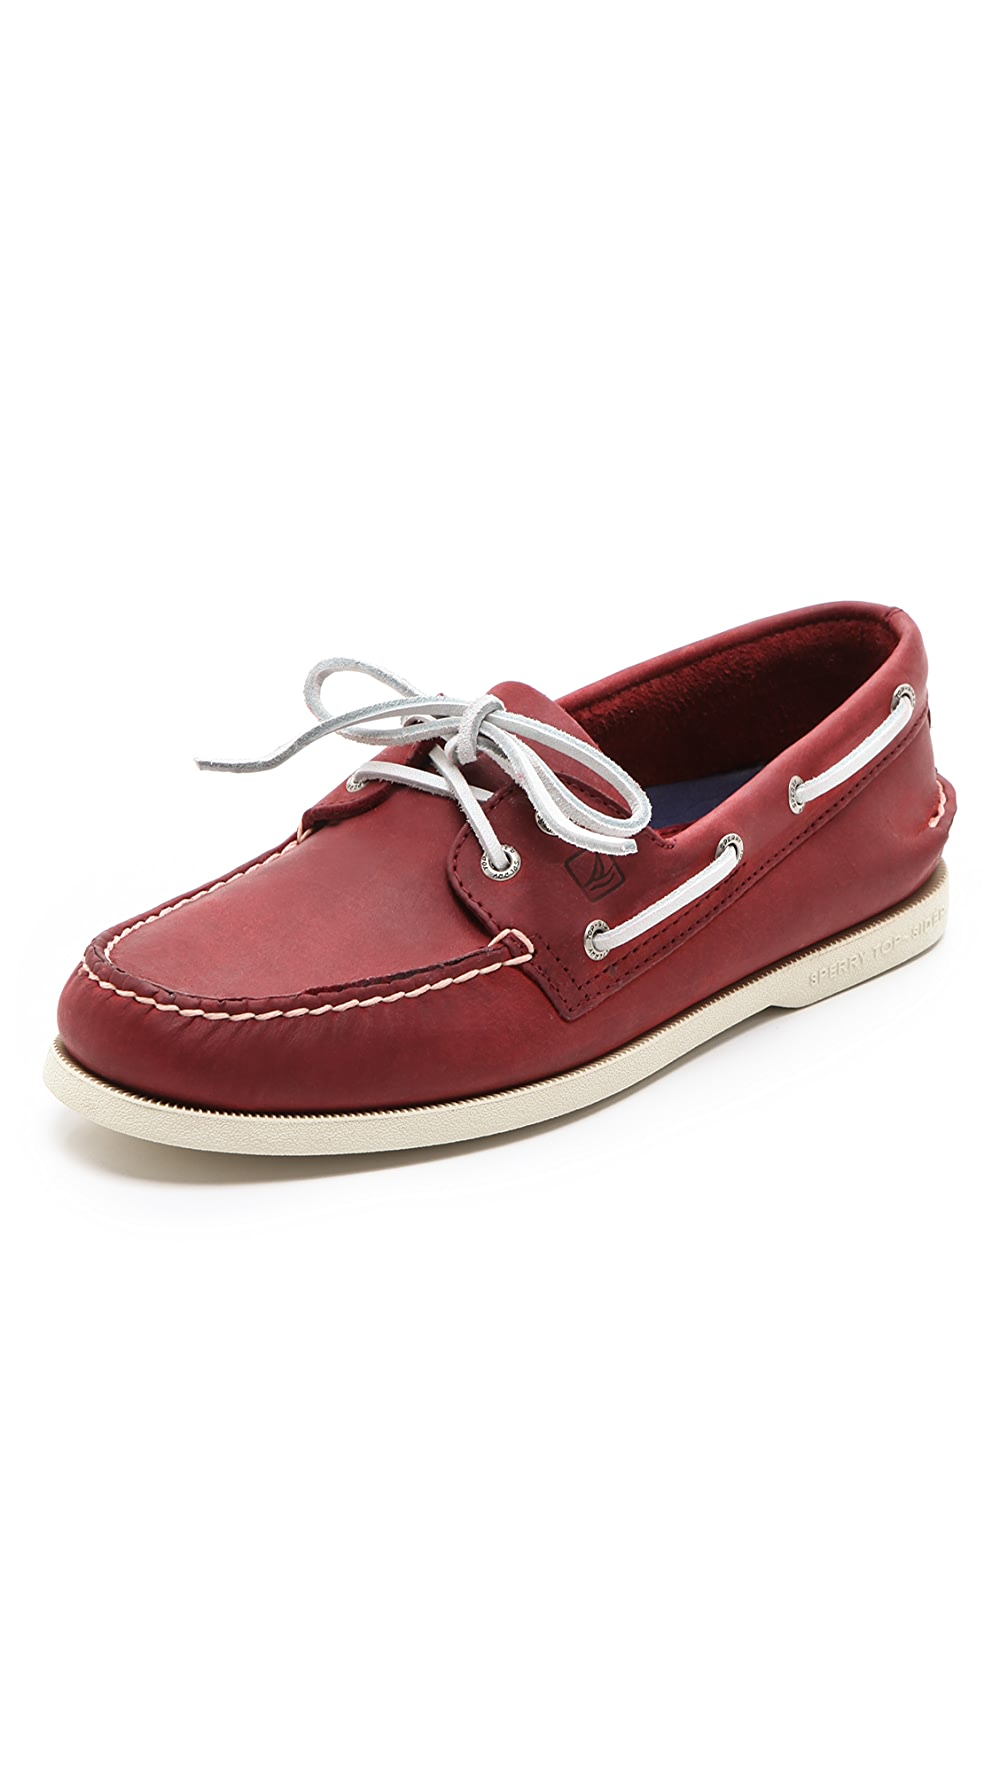 Classic Boat Shoes on White Sole